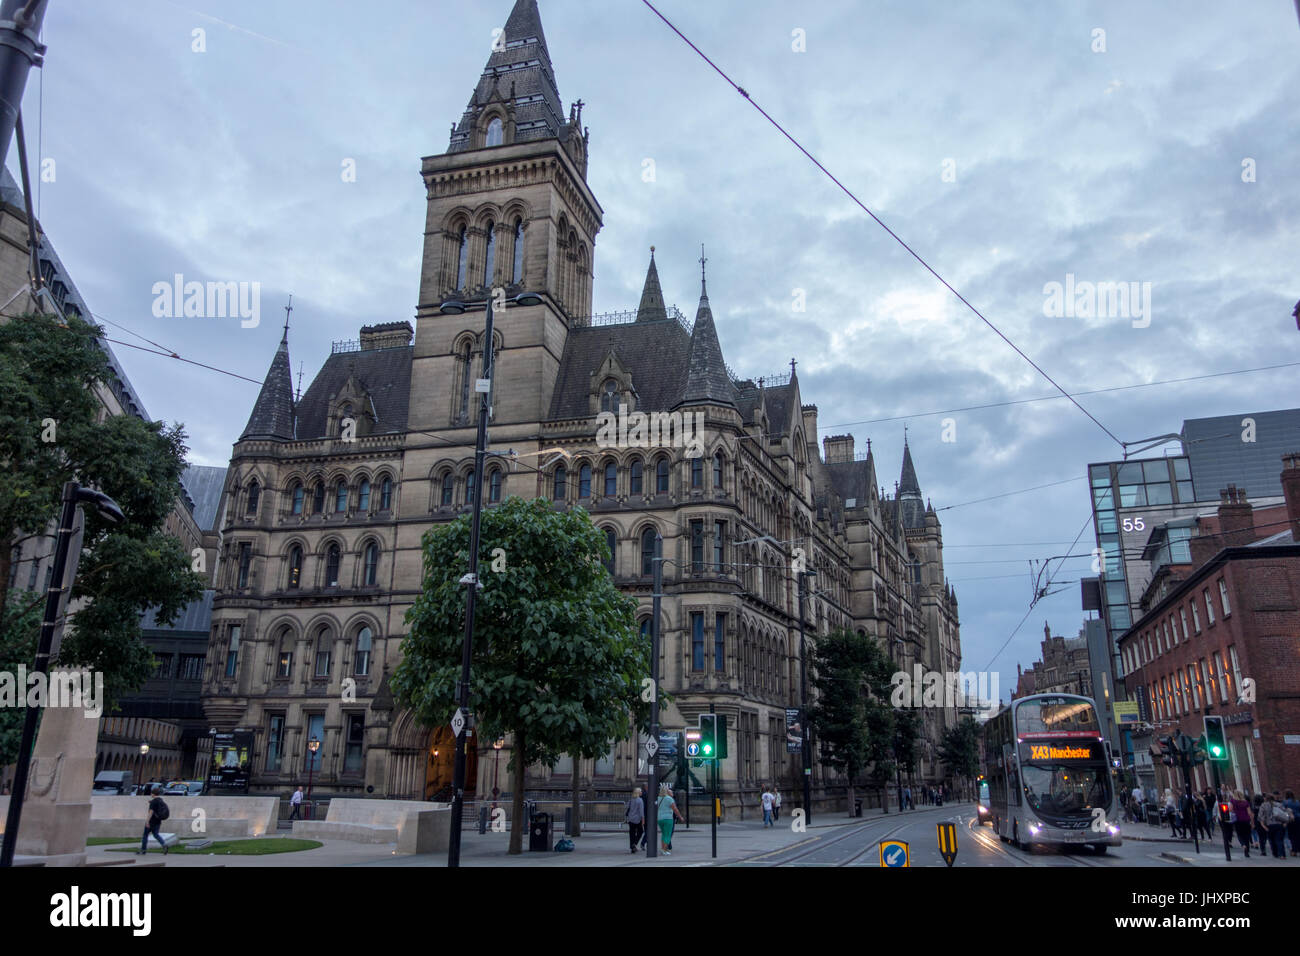 Manchester Town Hall, Manchester, UK - rear view in the evening with an X43 Manchester double decker bus coming - Stock Image